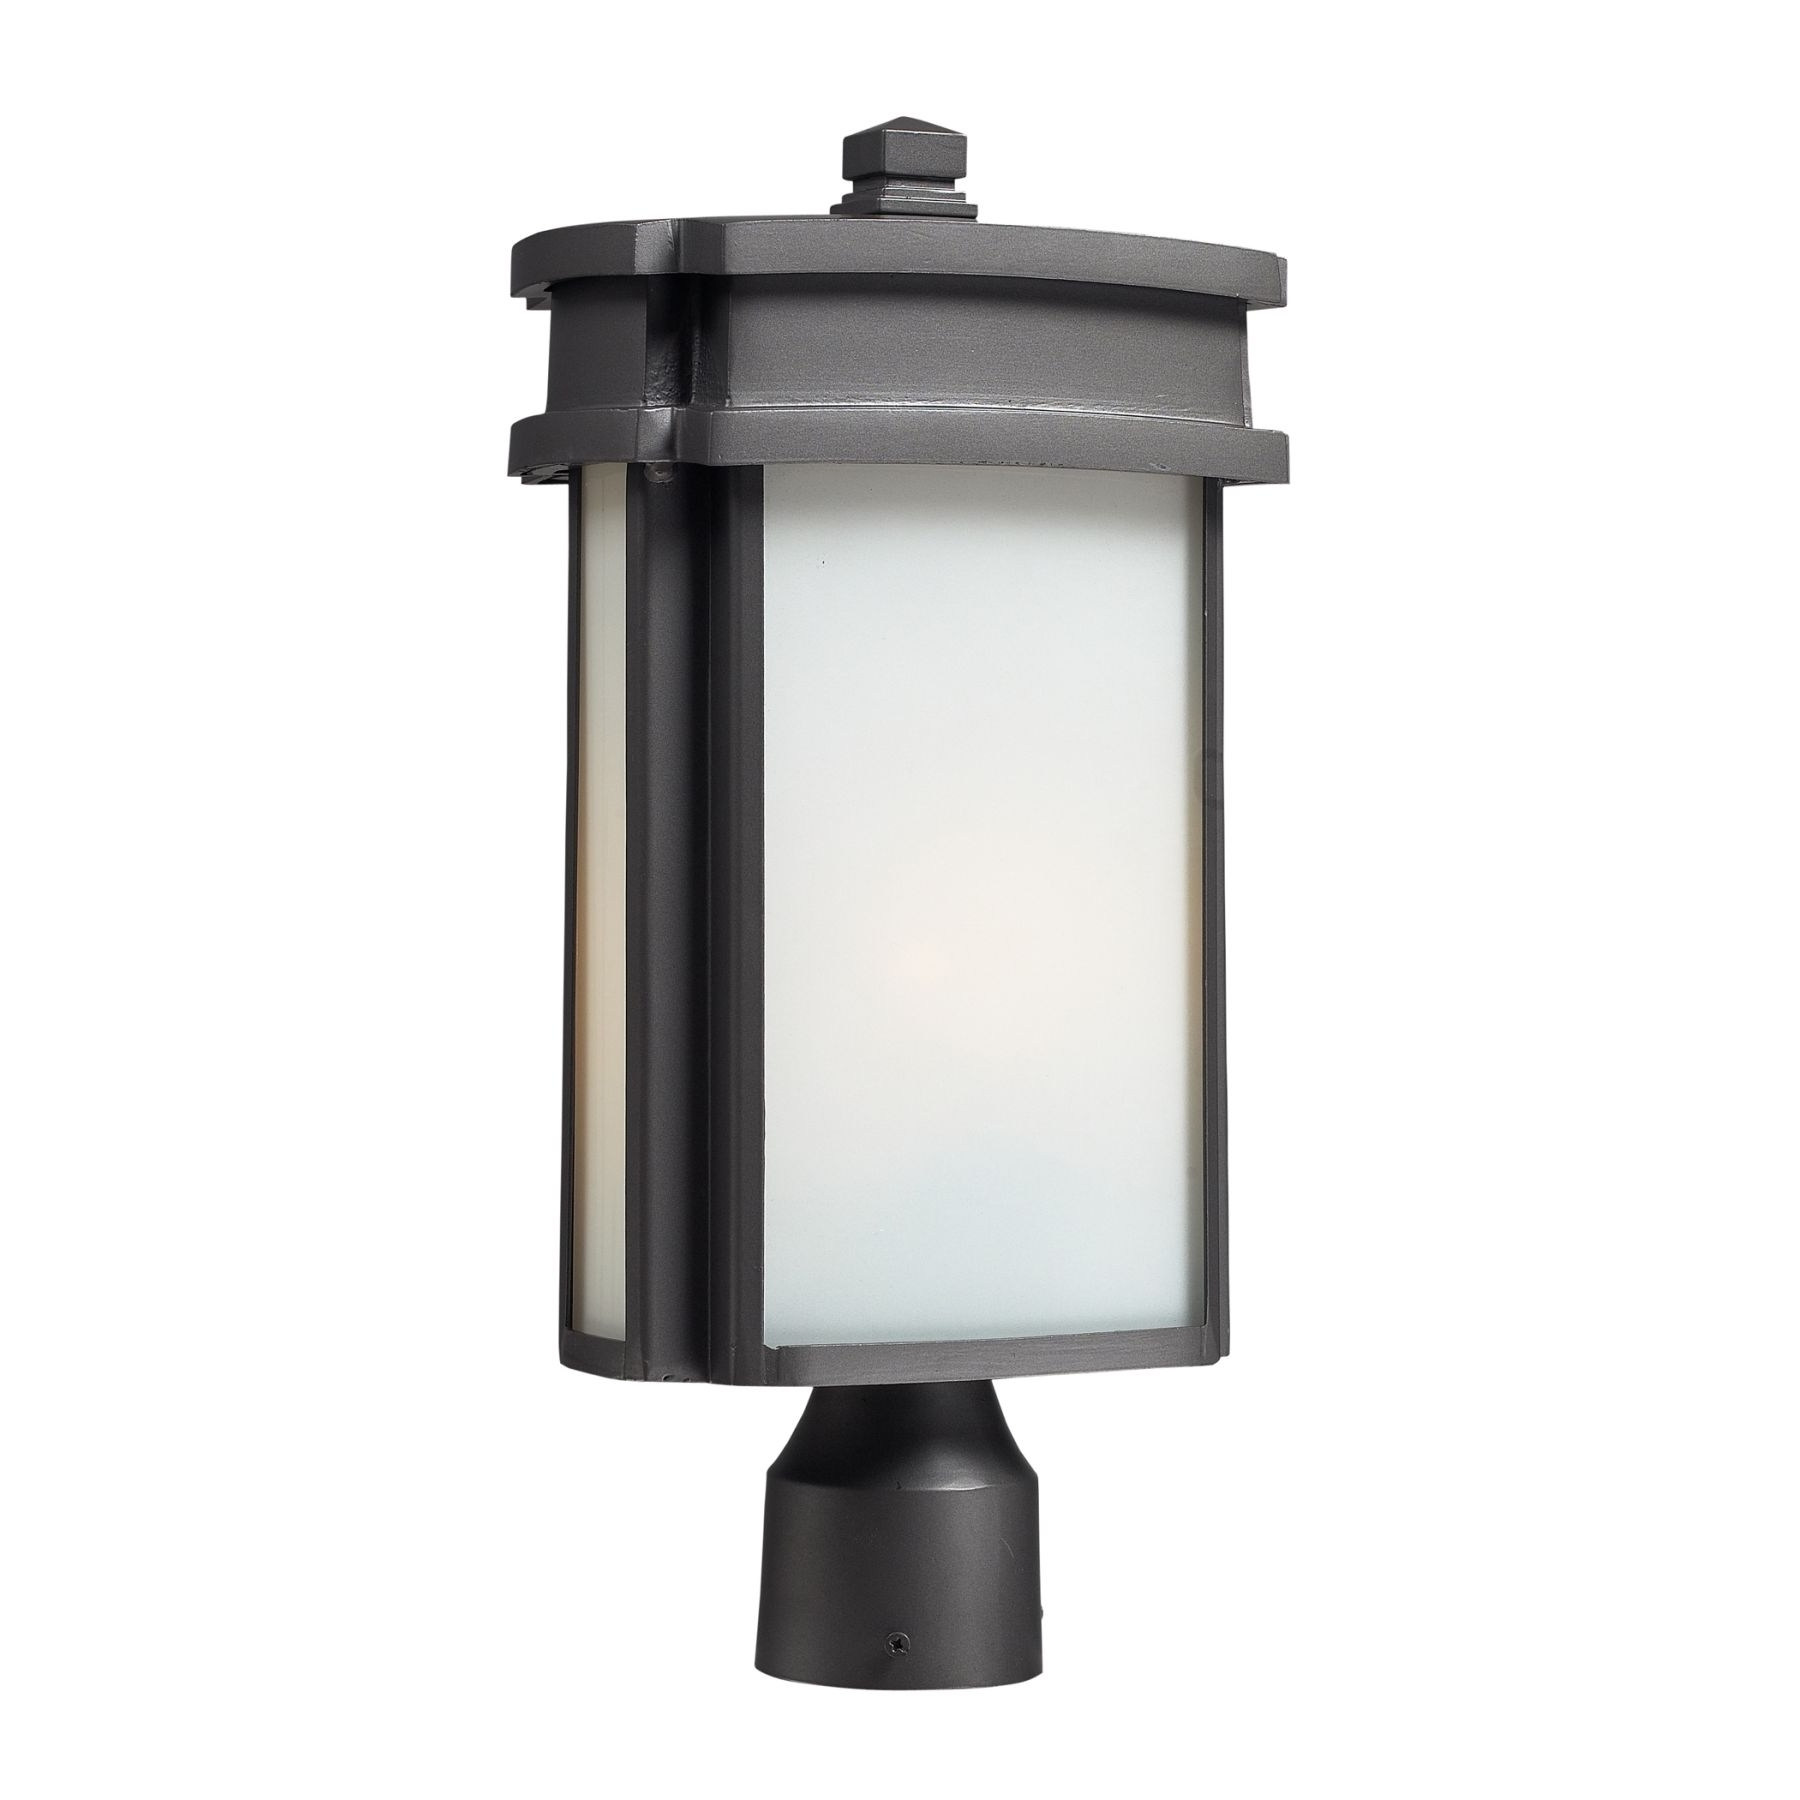 Modern Outdoor Post Lighting Throughout Most Up To Date Mid Century Modern Outdoor Post Lighting • Outdoor Lighting (View 10 of 20)